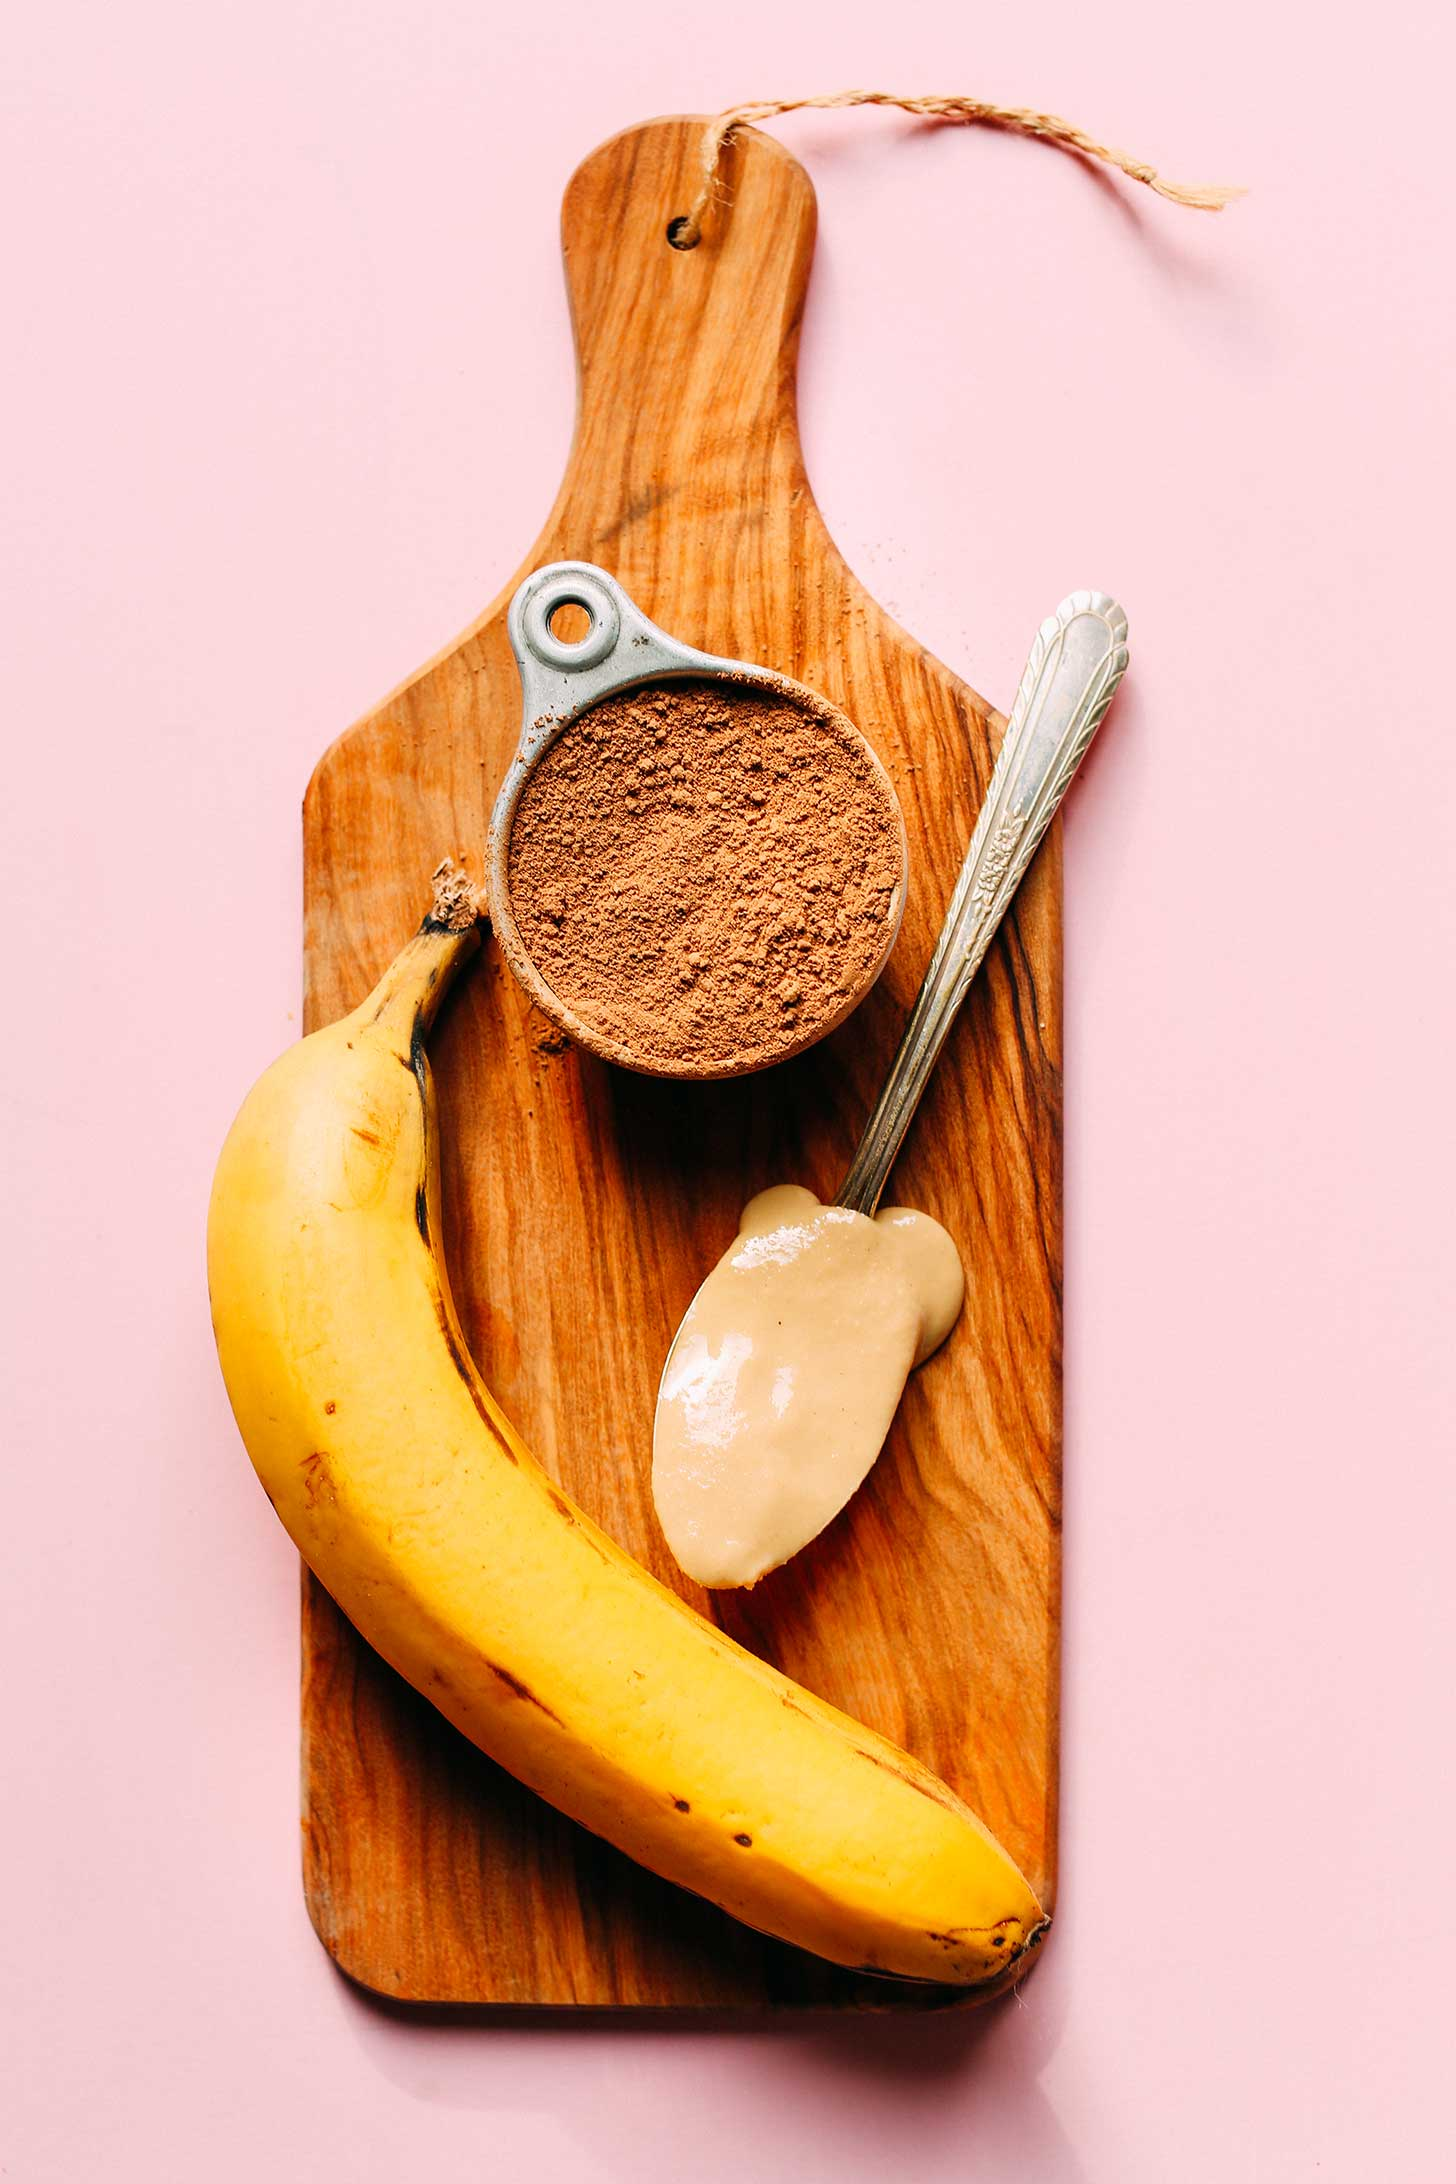 Cocoa powder, tahini, and banana on a wood board for making healthy Chocolate Tahini Banana Ice Cream